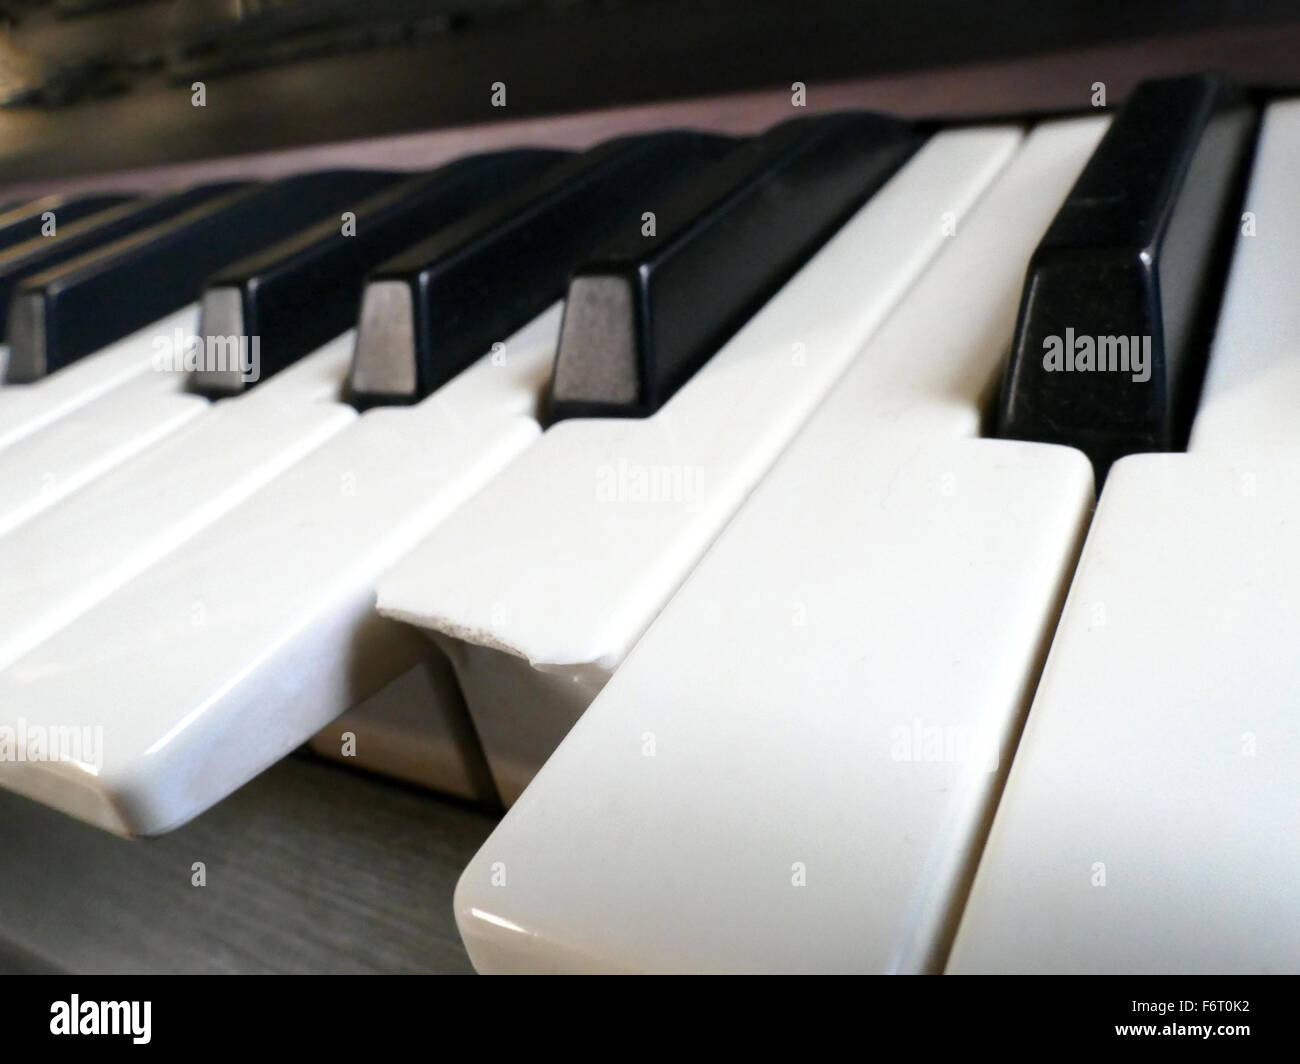 Closeup of broken key of Electronic Piano synthesizer Keyboard - Stock Image